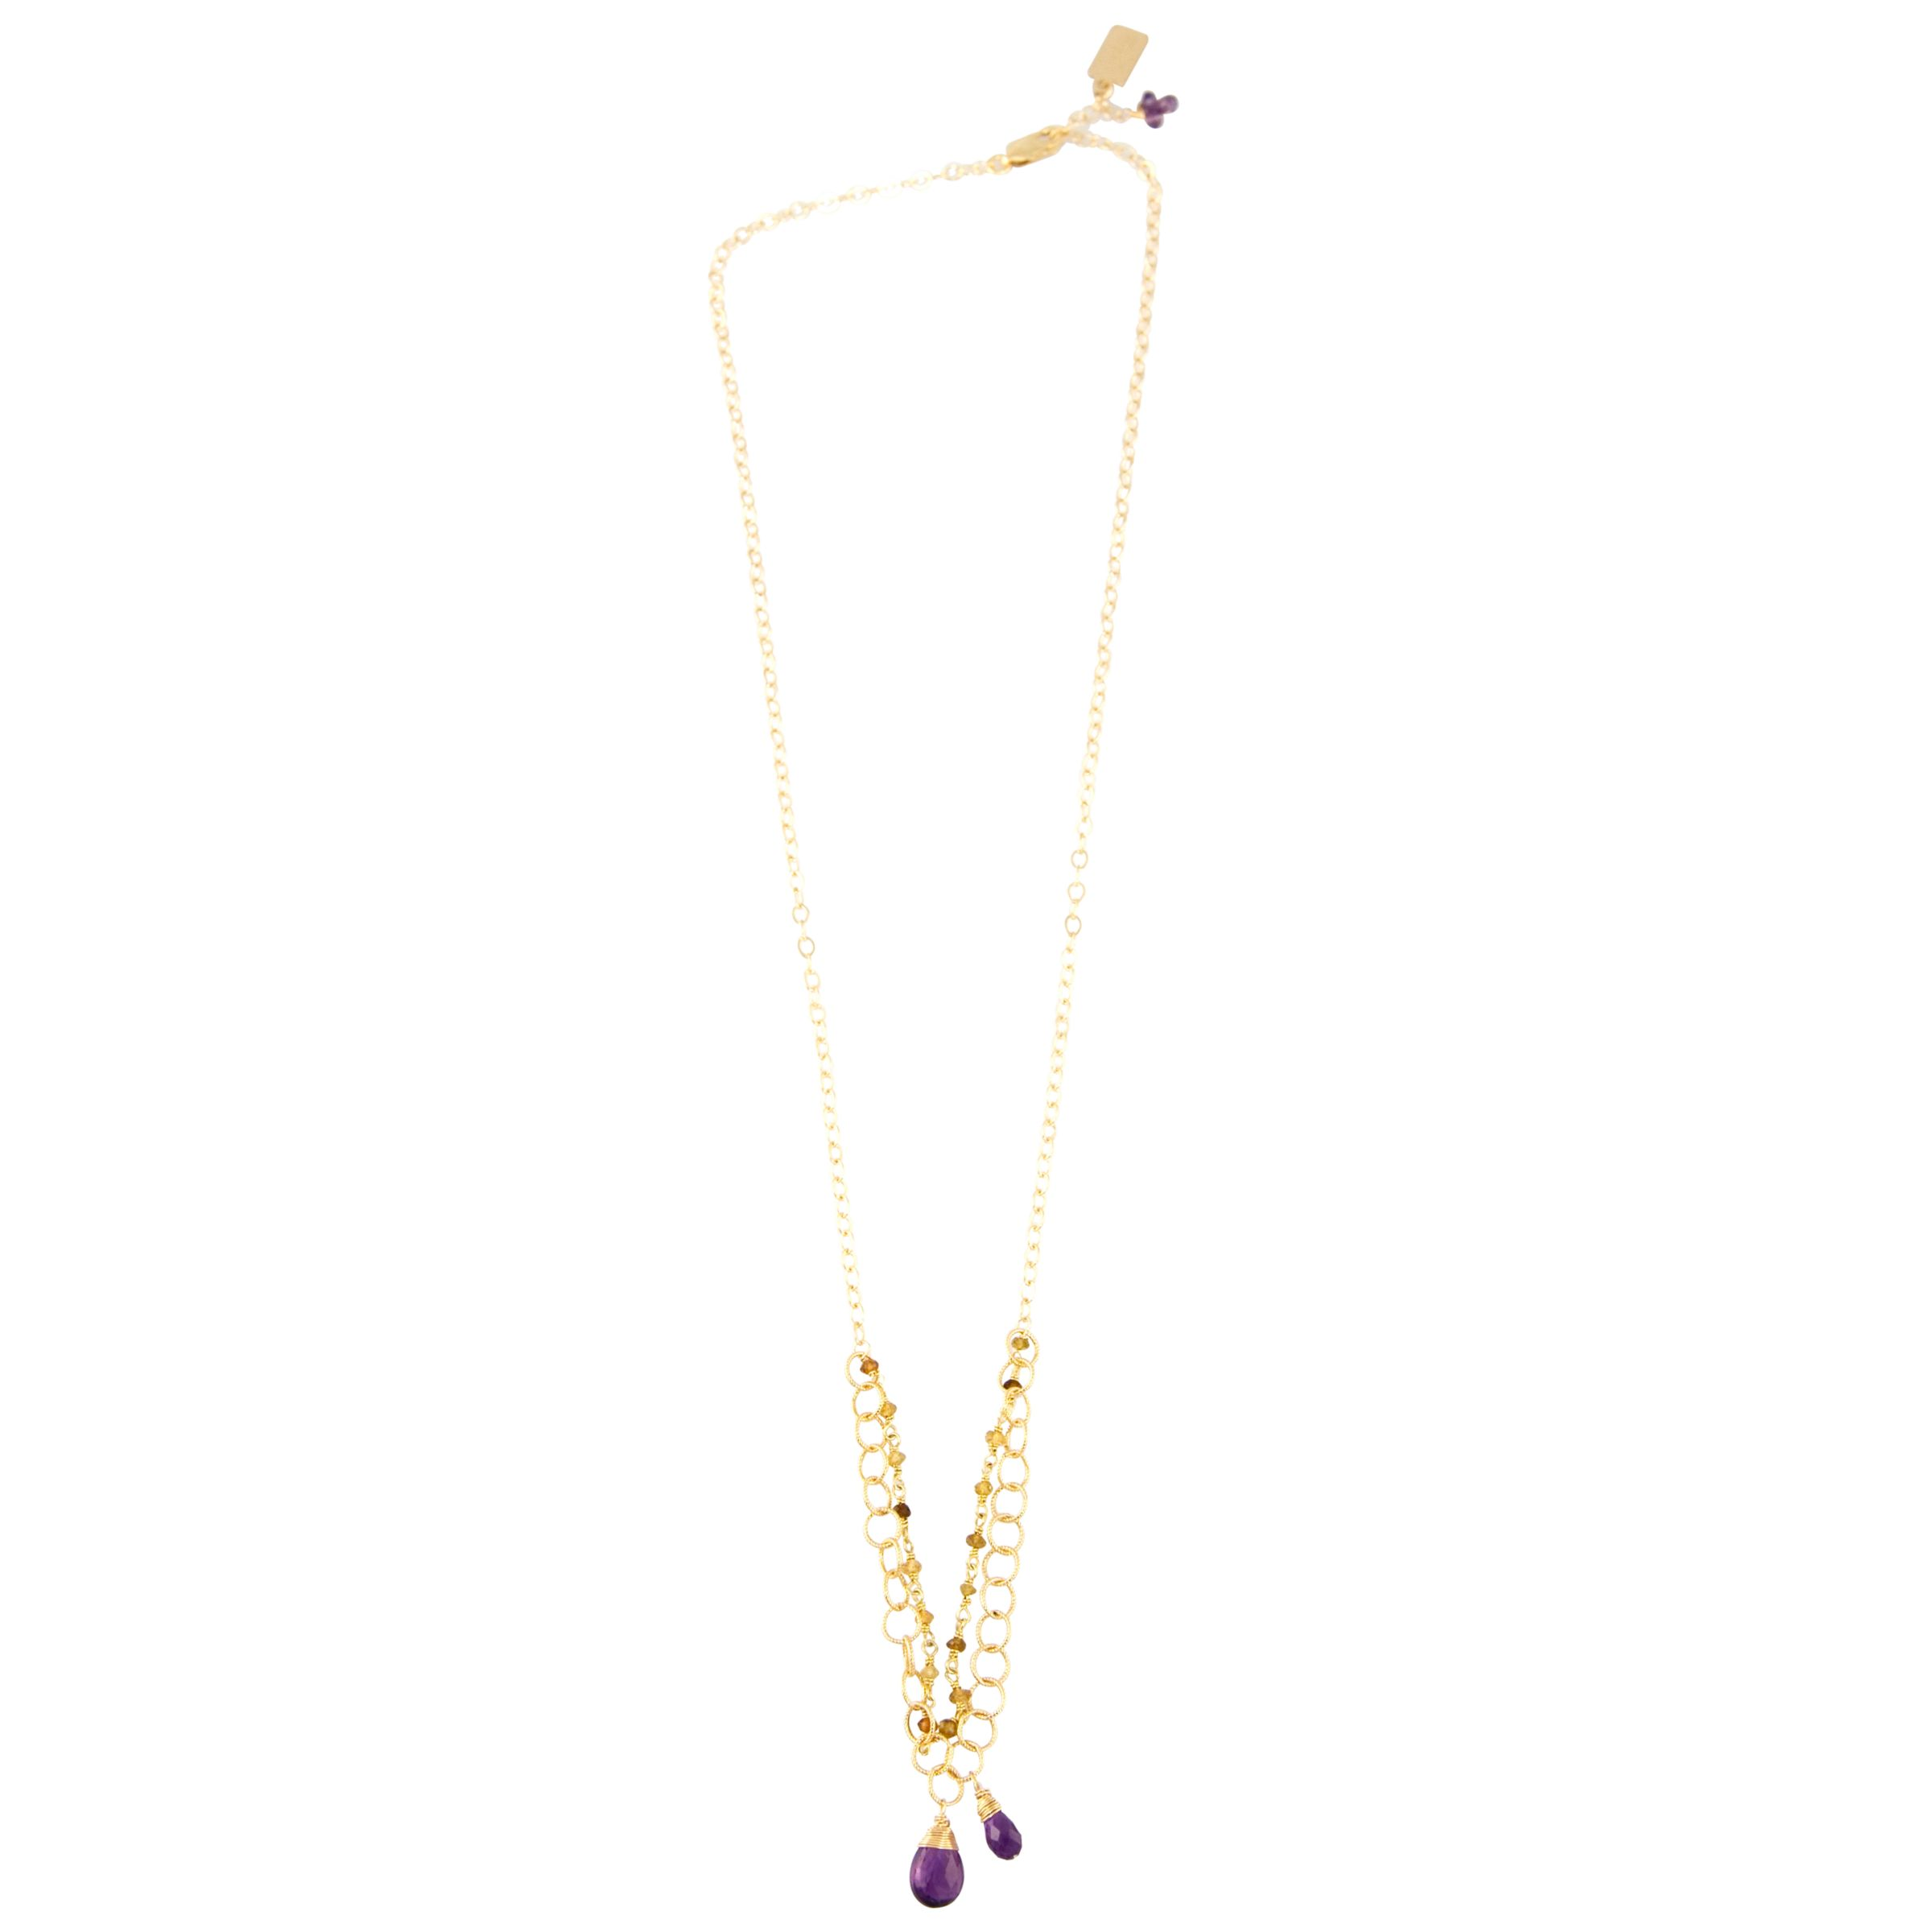 RueBelle 14ct Gold Filled Double Chain Pendant Necklace